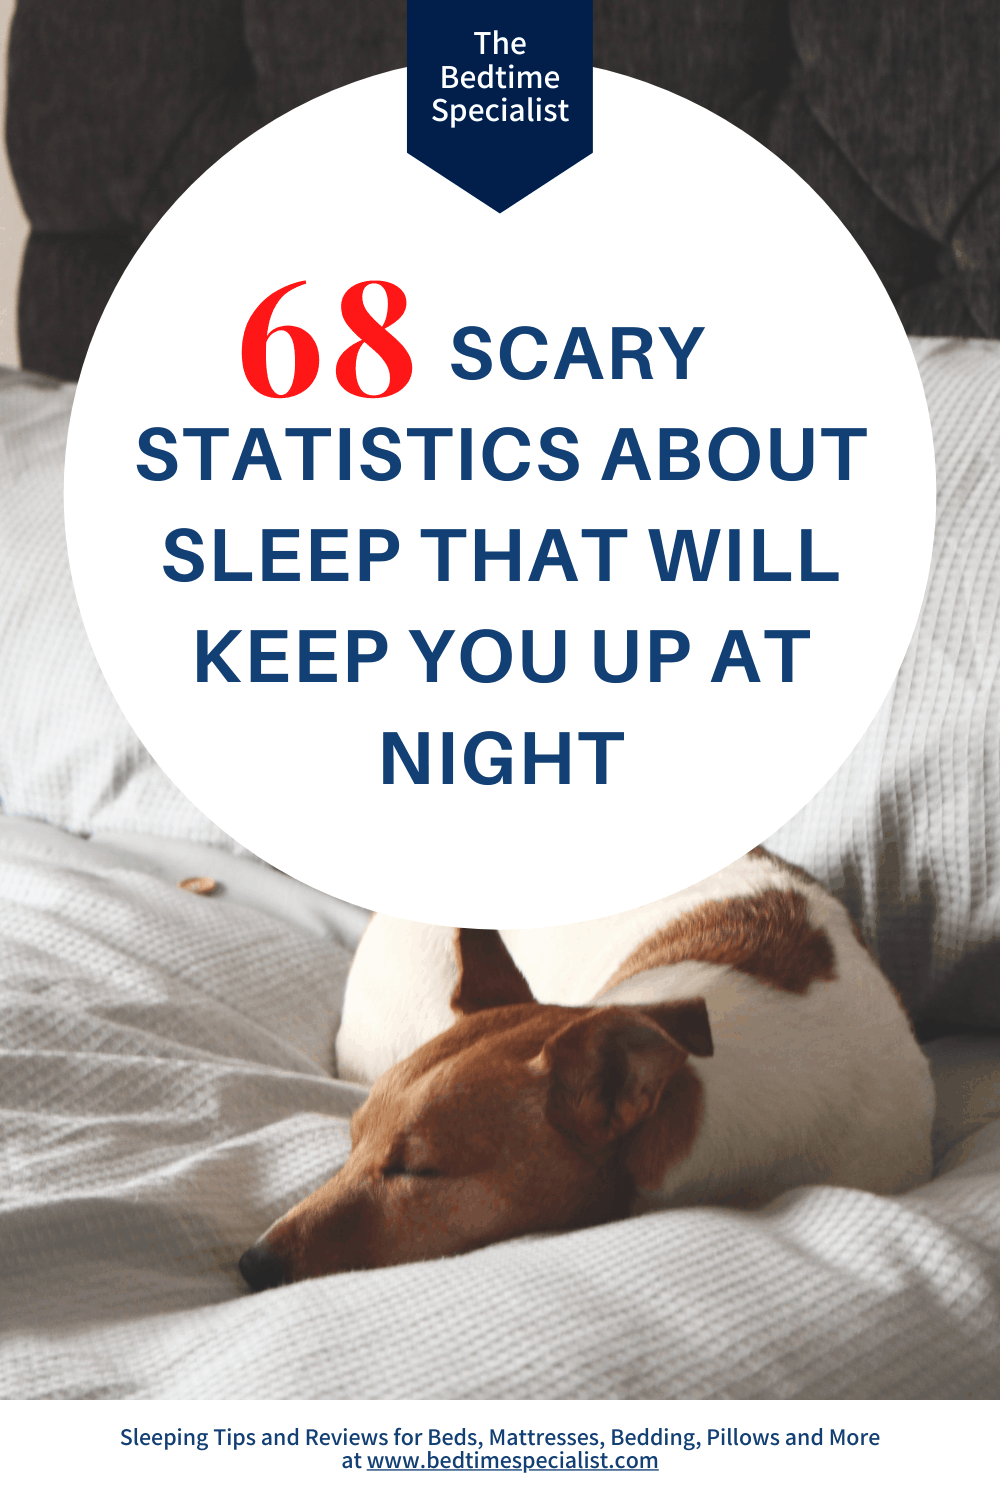 68 Scary Statistics About Sleep That Will Keep You Up At Night